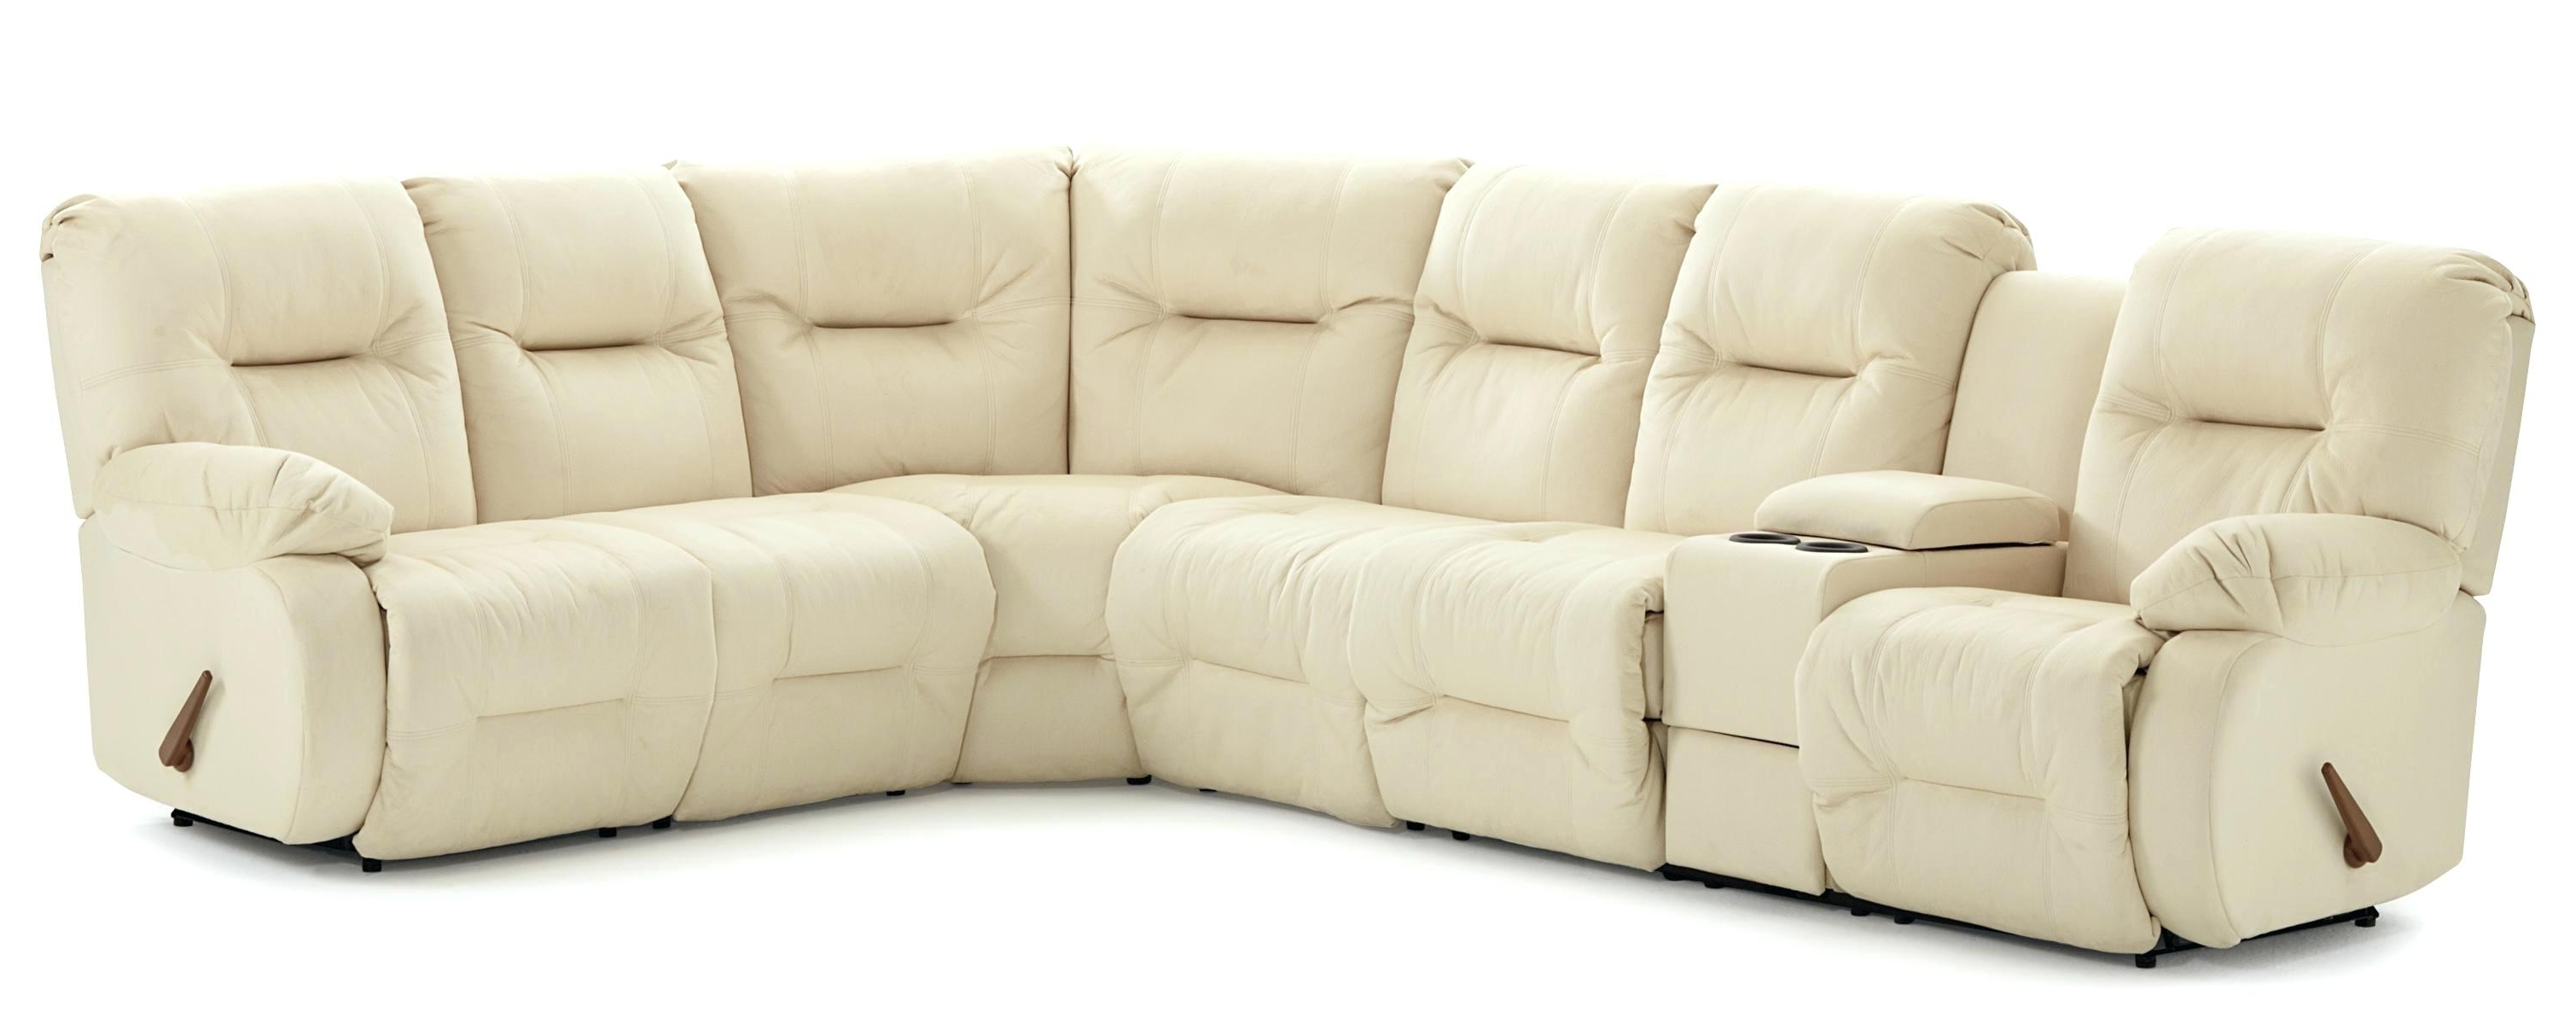 Well Known Best Sectional Sofa Covers Diy Sofas Dallas Texas Bed Cheap Throughout Dallas Texas Sectional Sofas (View 13 of 15)